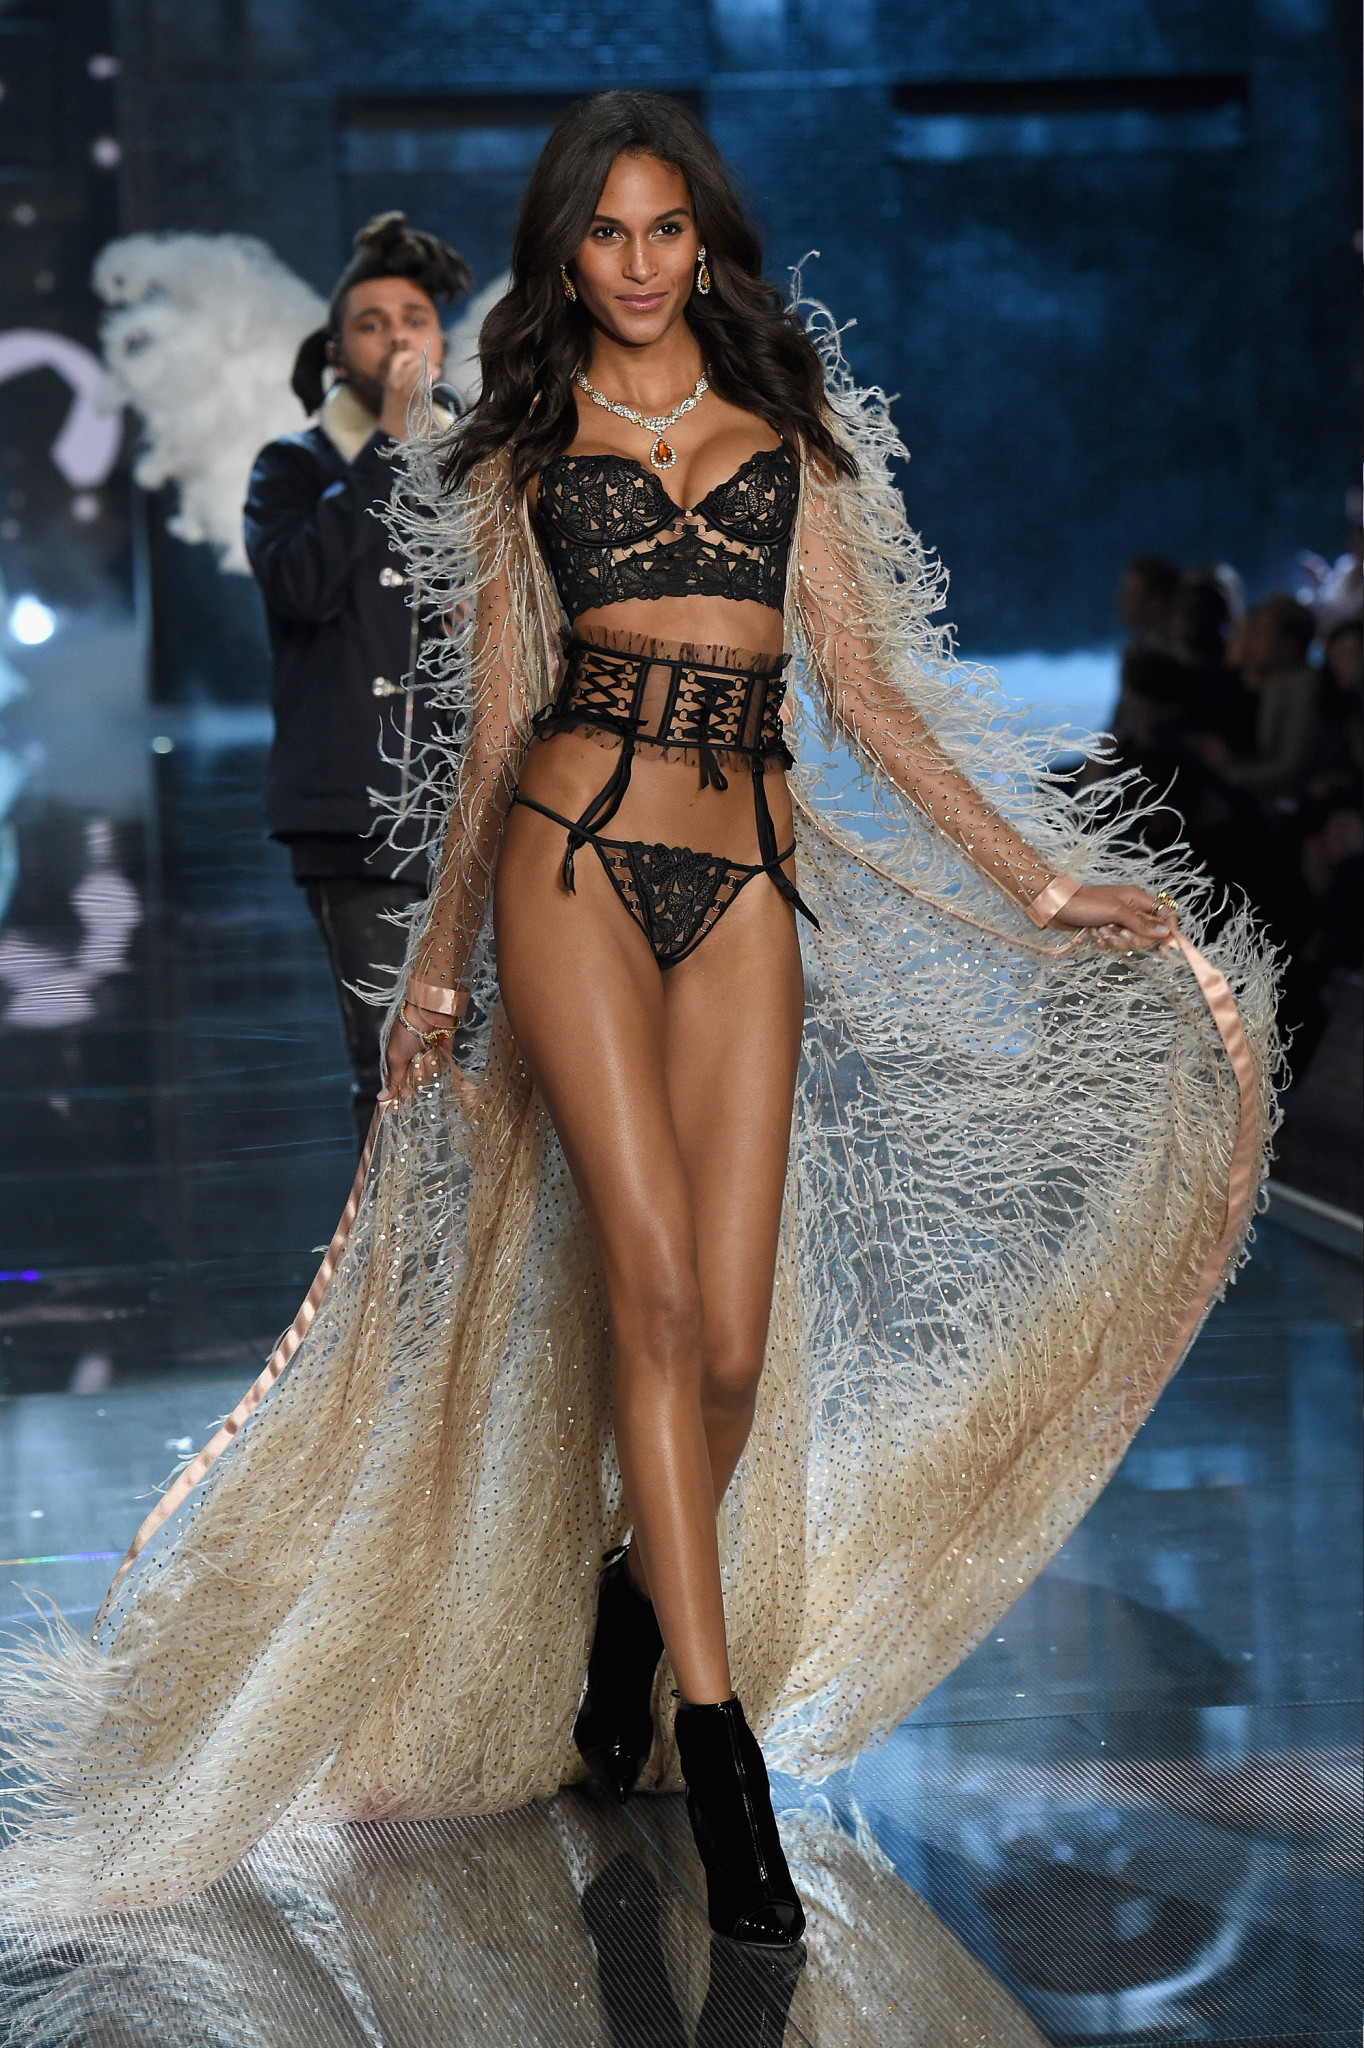 NEW YORK, NY - NOVEMBER 10: Model Cindy Bruna from France walks the runway during the 2015 Victoria's Secret Fashion Show at Lexington Avenue Armory on November 10, 2015 in New York City.